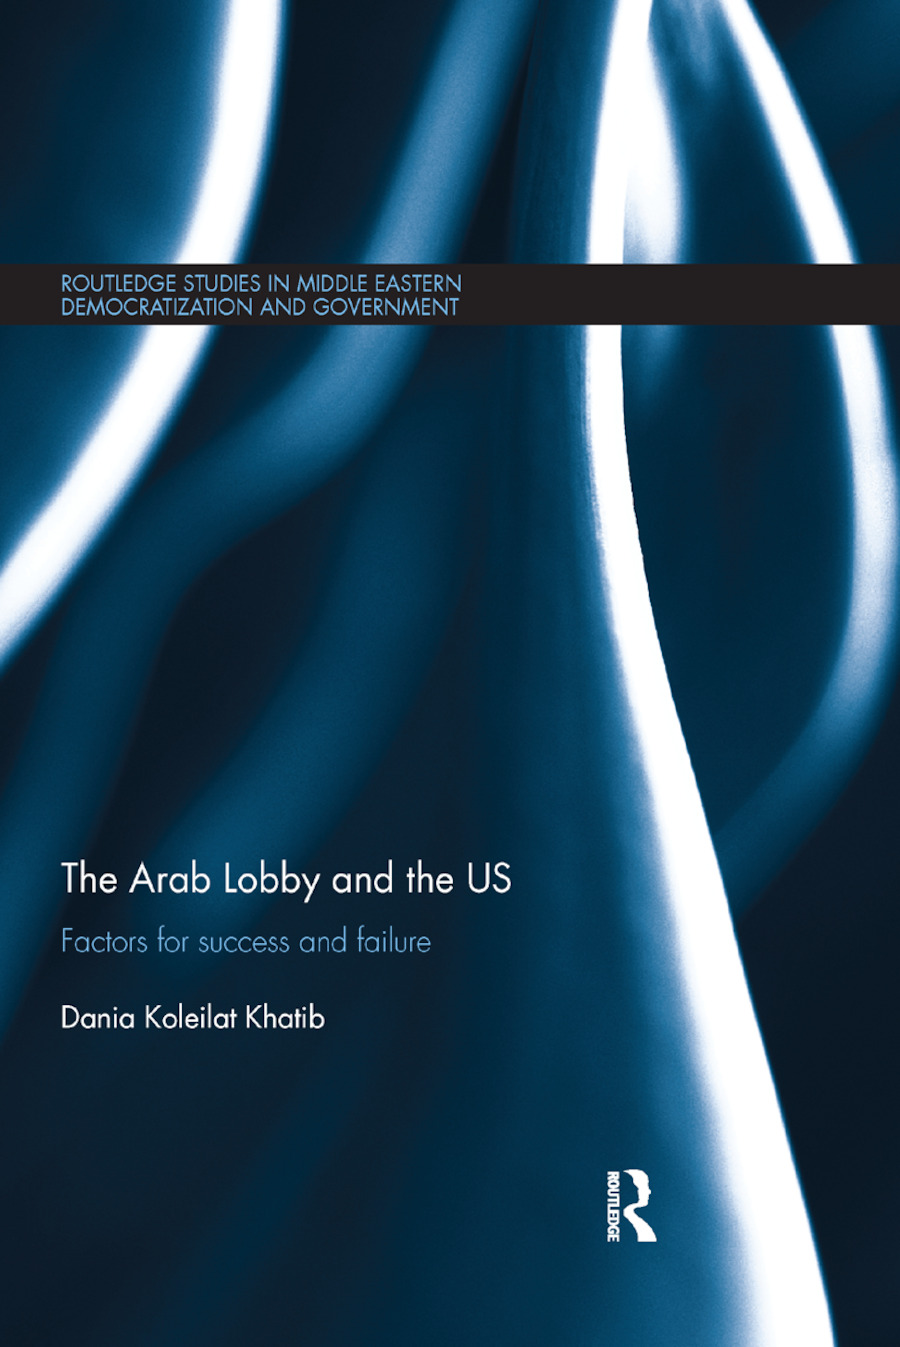 The Arab Lobby and the US: Factors for Success and Failure book cover